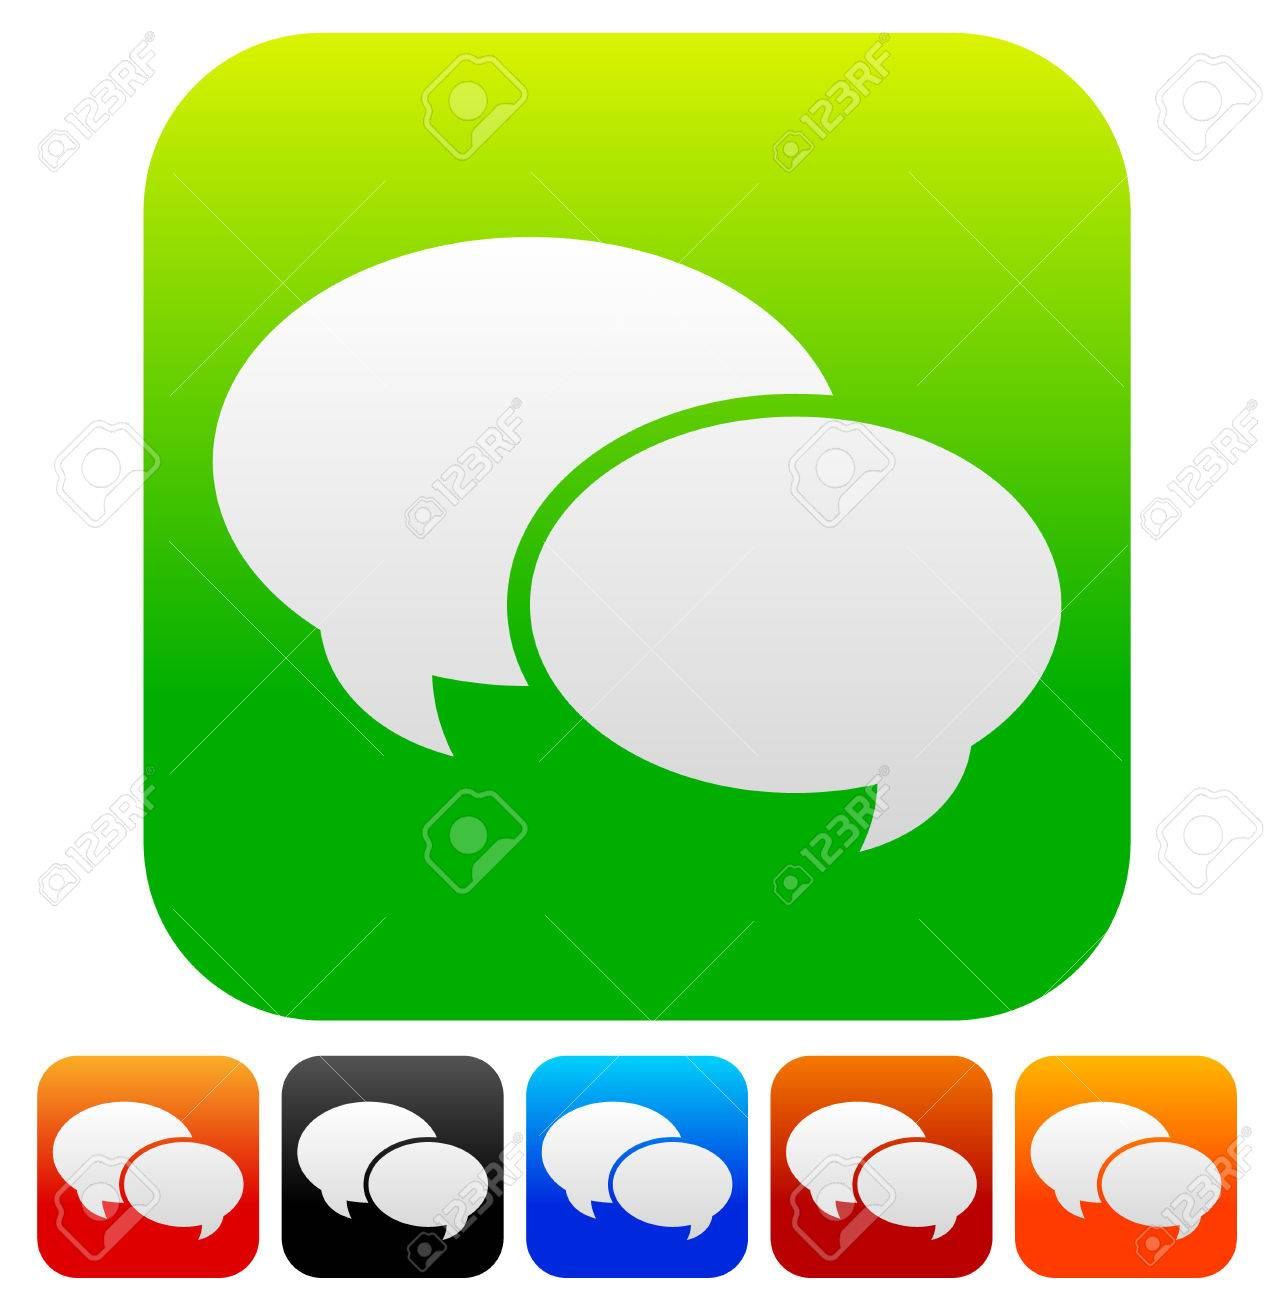 speech bubble vector graphics two overlapping speech talk bubbles rh 123rf com free vector graphics speech bubble free vector cartoon speech bubbles